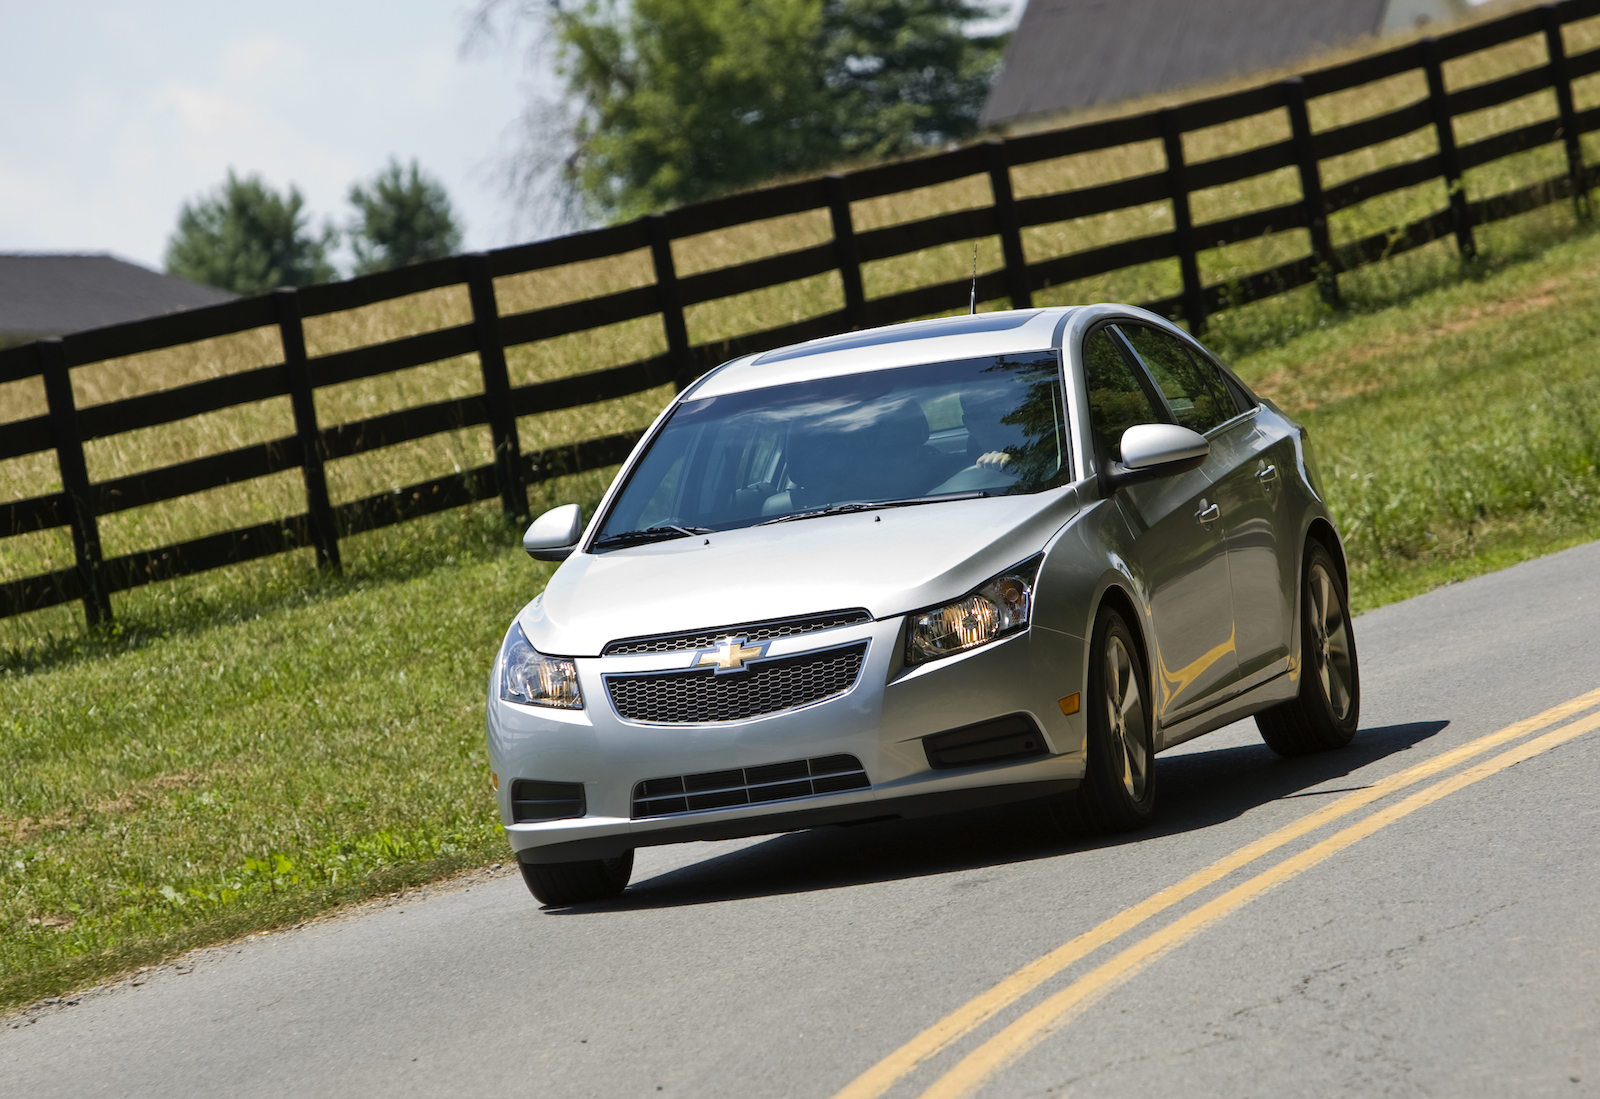 Cruze chevy cruze 2012 : 5 Reasons the Chevy Cruze is the Best City Car - McCluskey Automotive